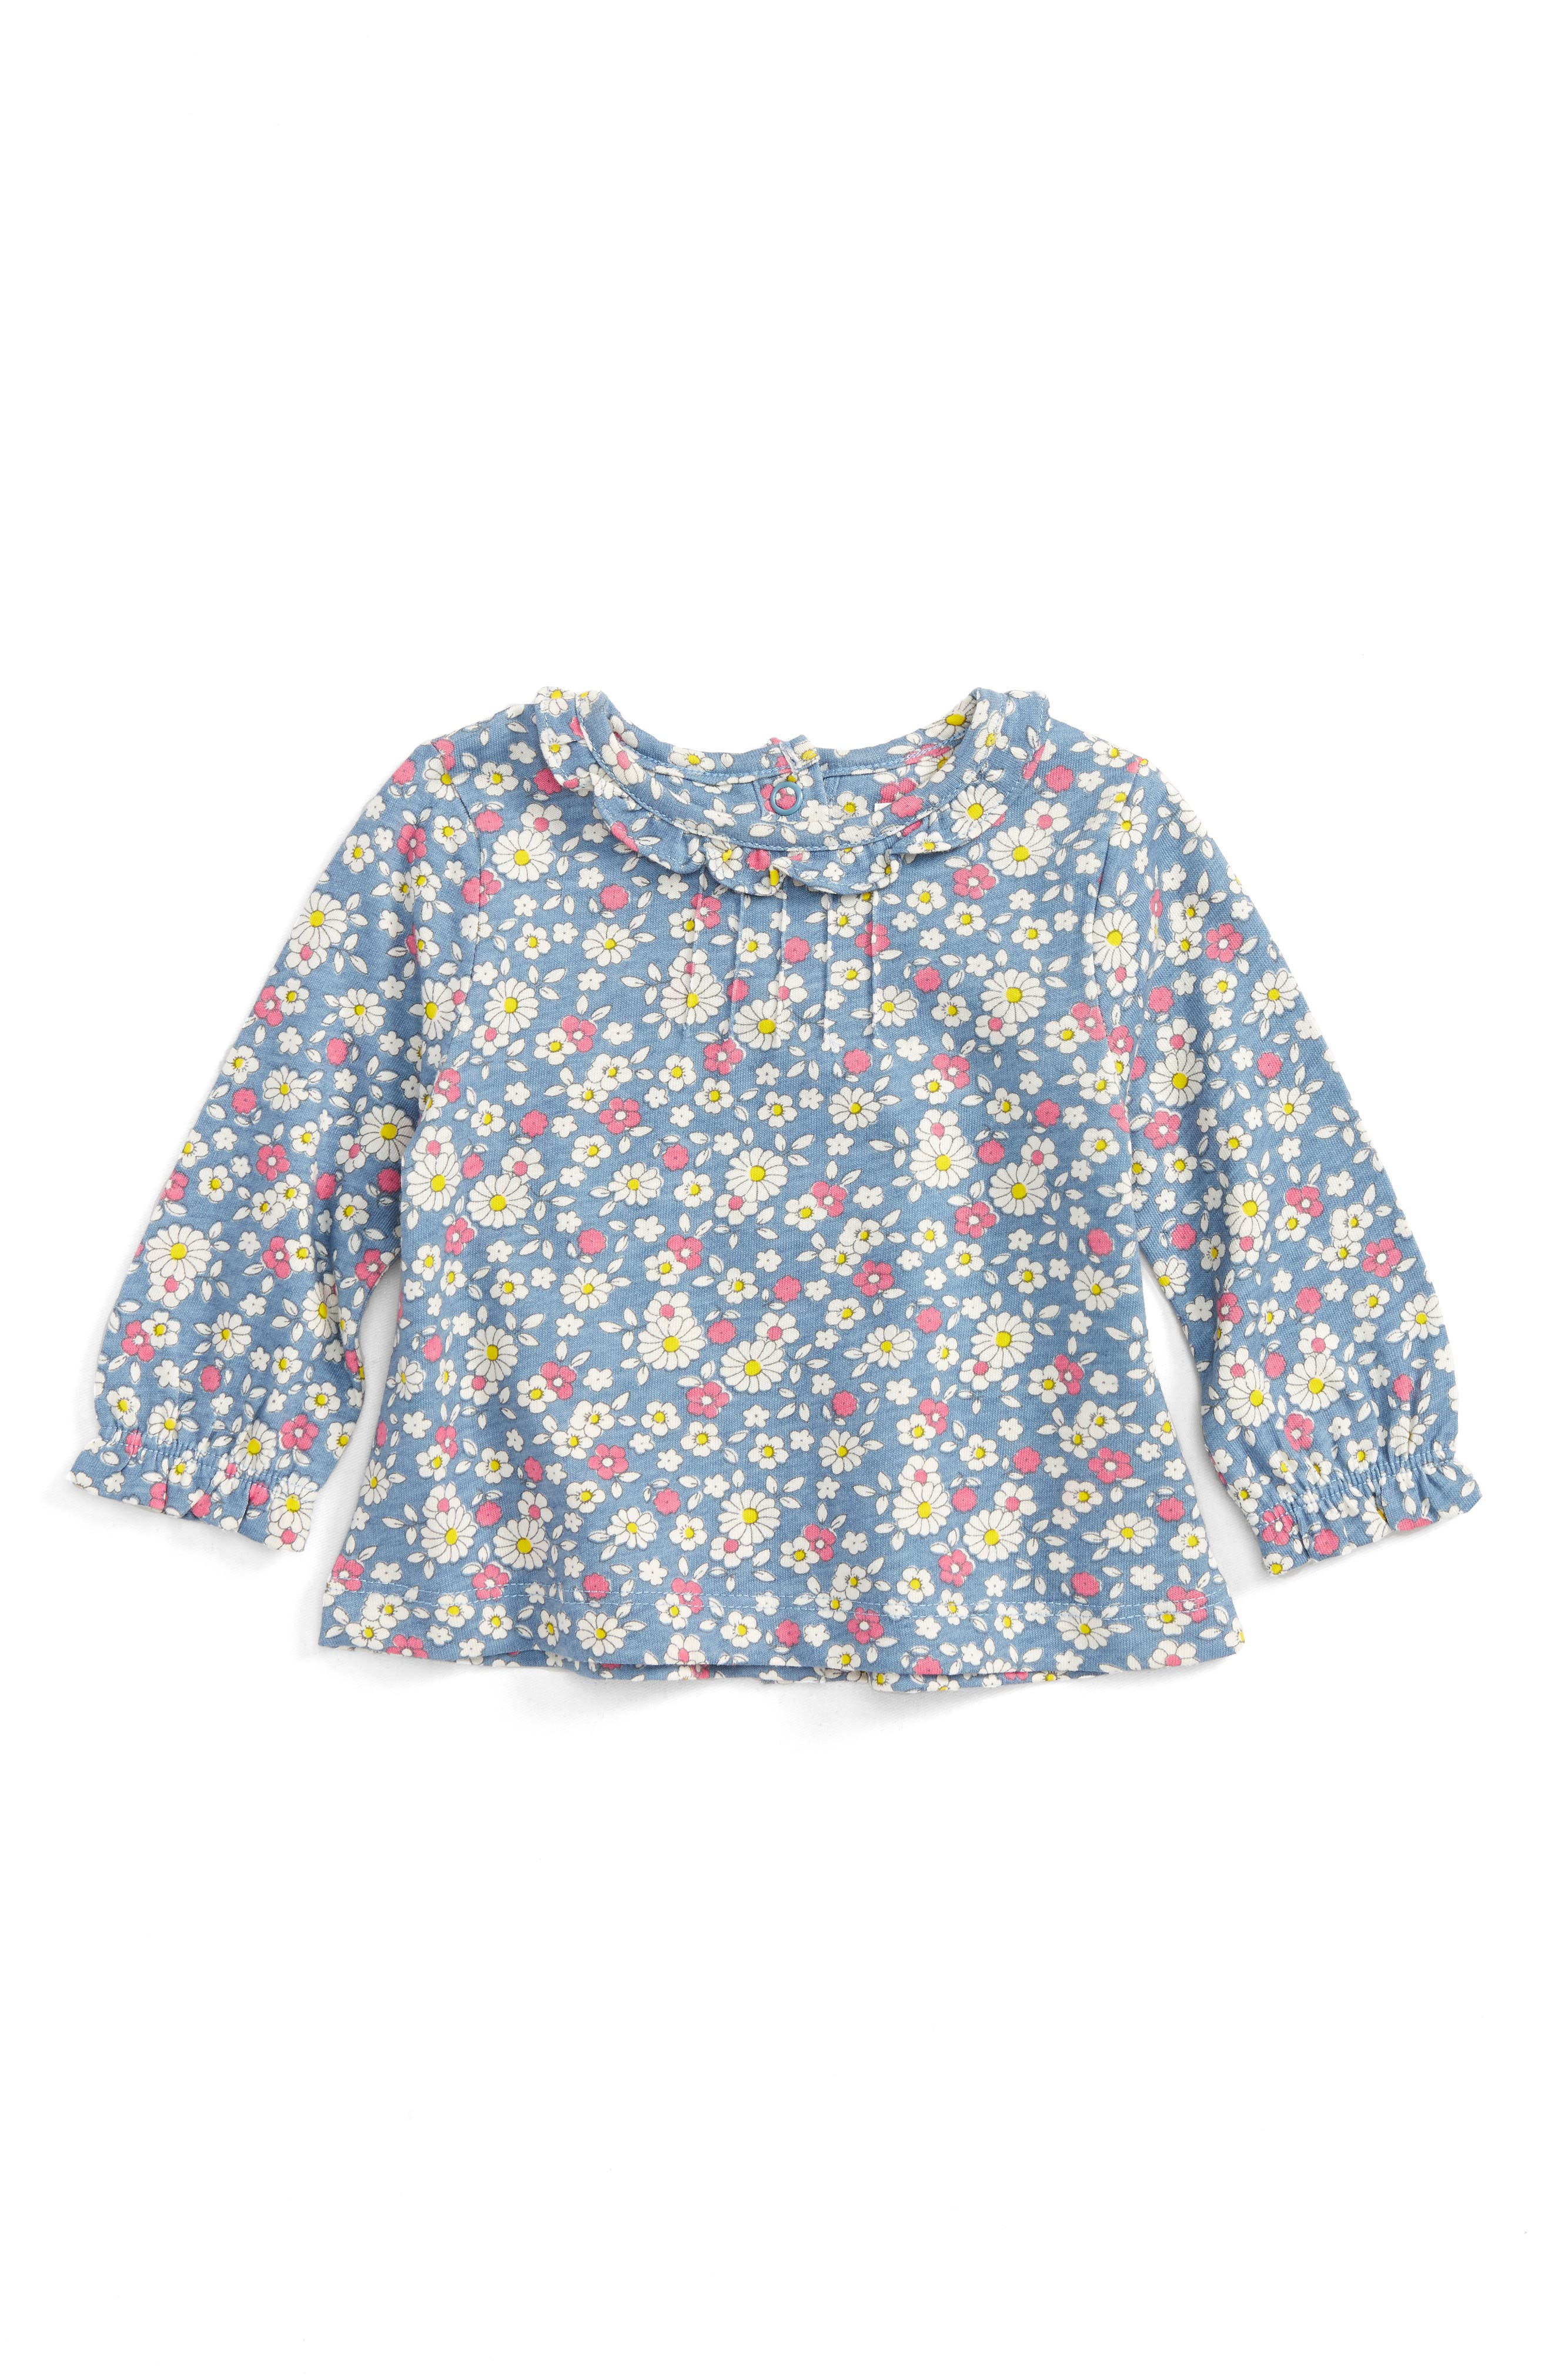 Alternate Image 1 Selected - Mini Boden Pretty Printed Shirt (Baby Girls & Toddler Girls)